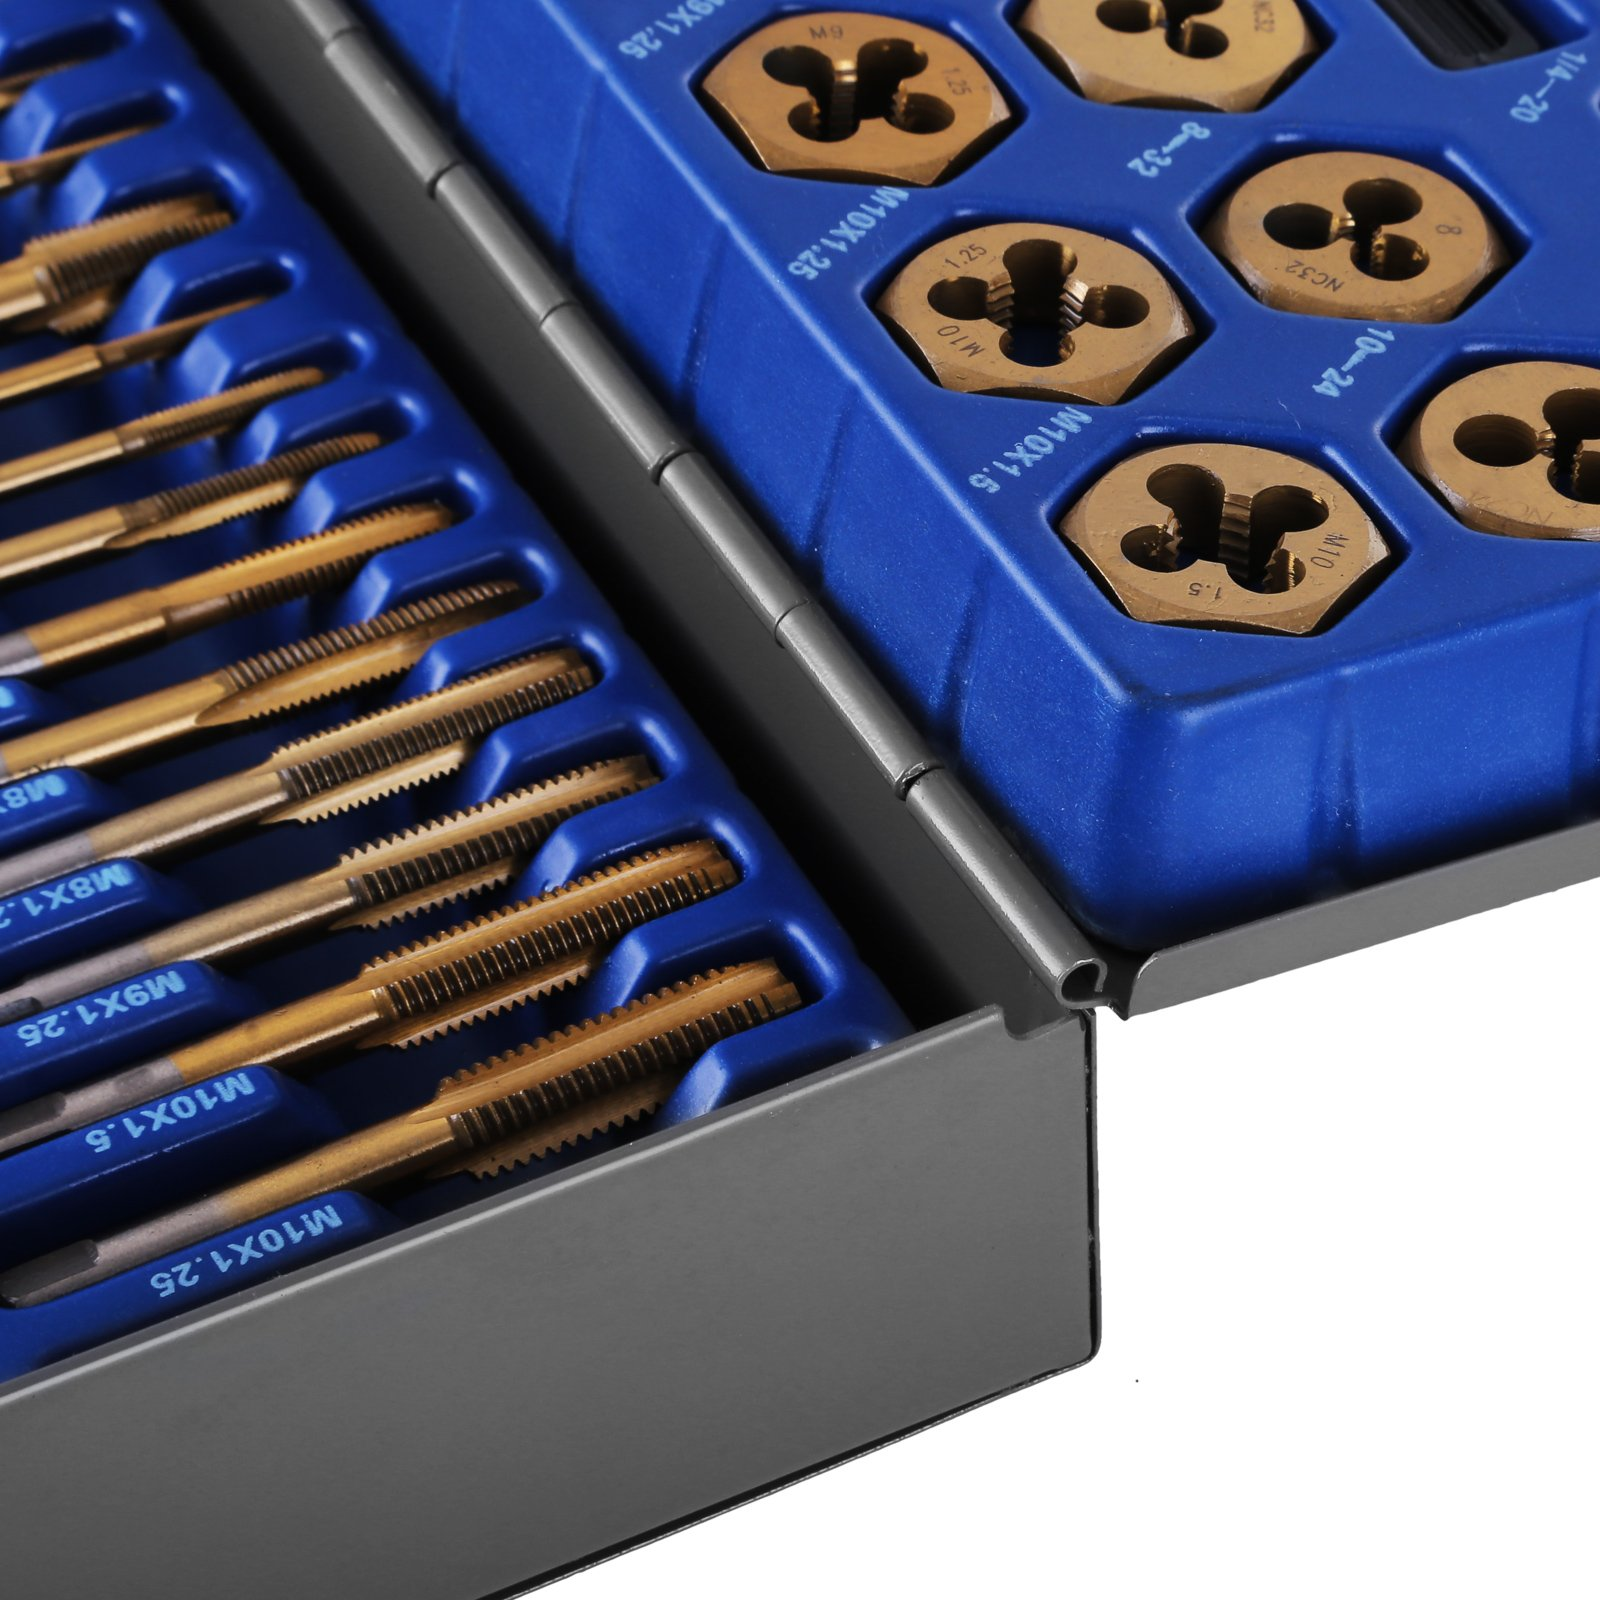 Happybuy Tap and Die Set 86PCS Combination SAE / Metric Tap and Die Kit for Cutting External and Internal Threads with Storage Case by Happybuy (Image #8)